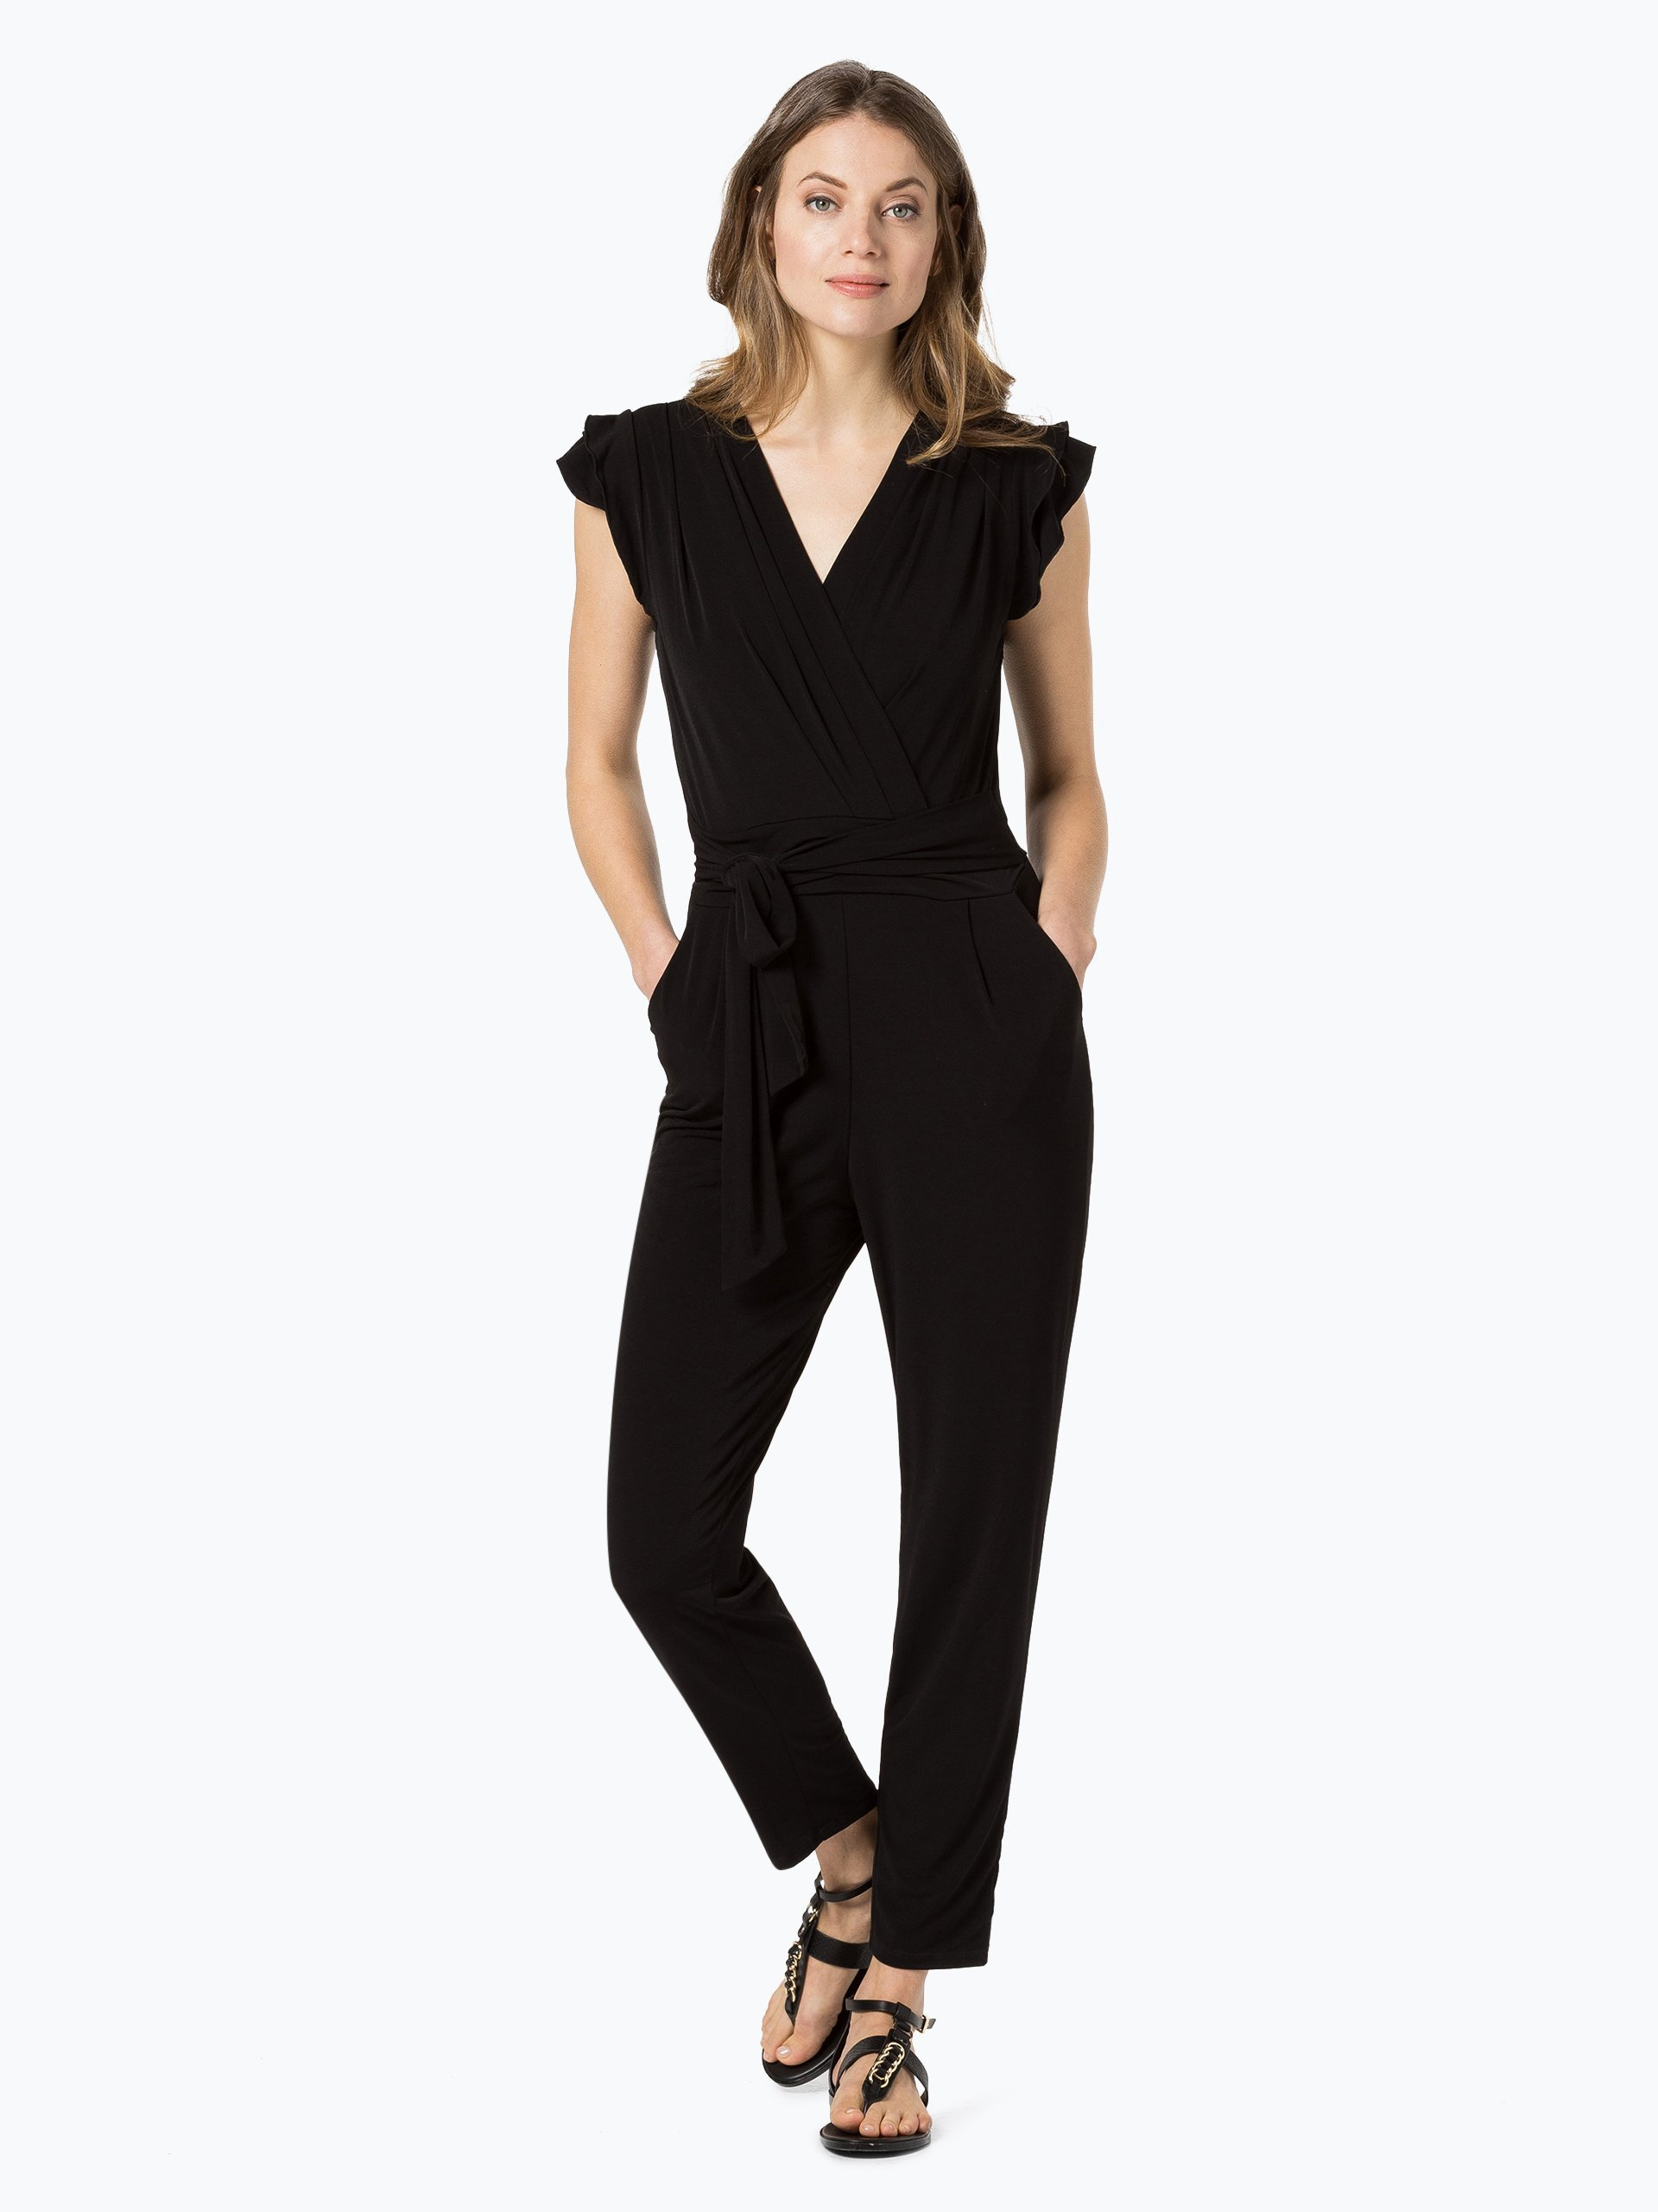 esprit collection damen jumpsuit schwarz uni online kaufen peek und cloppenburg de. Black Bedroom Furniture Sets. Home Design Ideas